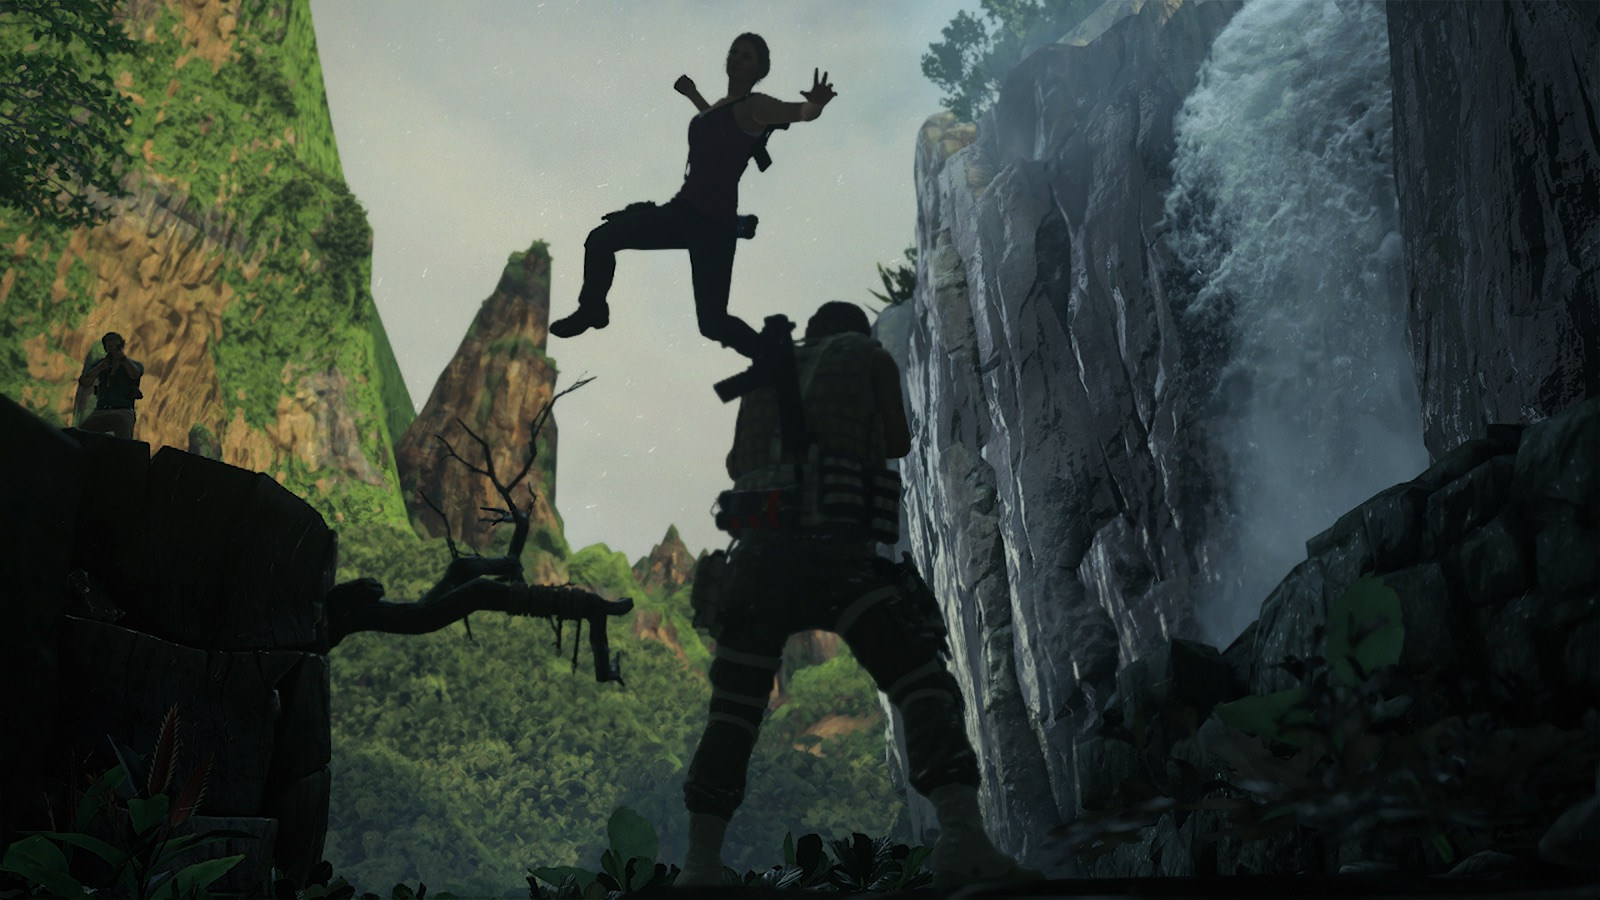 Uncharted 4 Multiplayer Beta Detailed With An Hour Of Gameplay Footage VG247